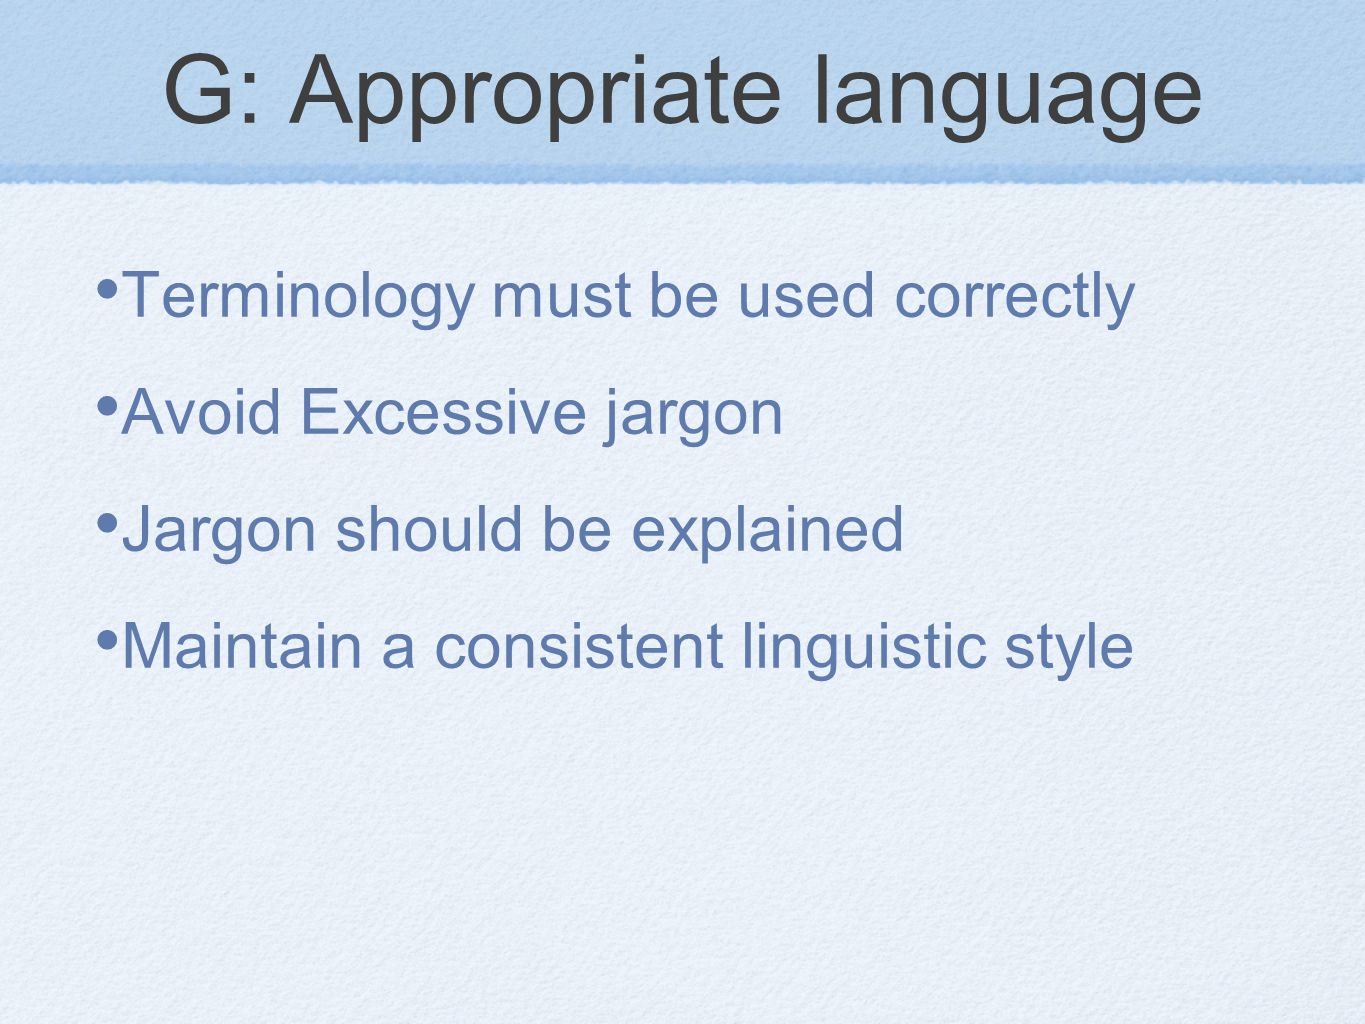 G: Appropriate language Terminology must be used correctly Avoid Excessive jargon Jargon should be explained Maintain a consistent linguistic style